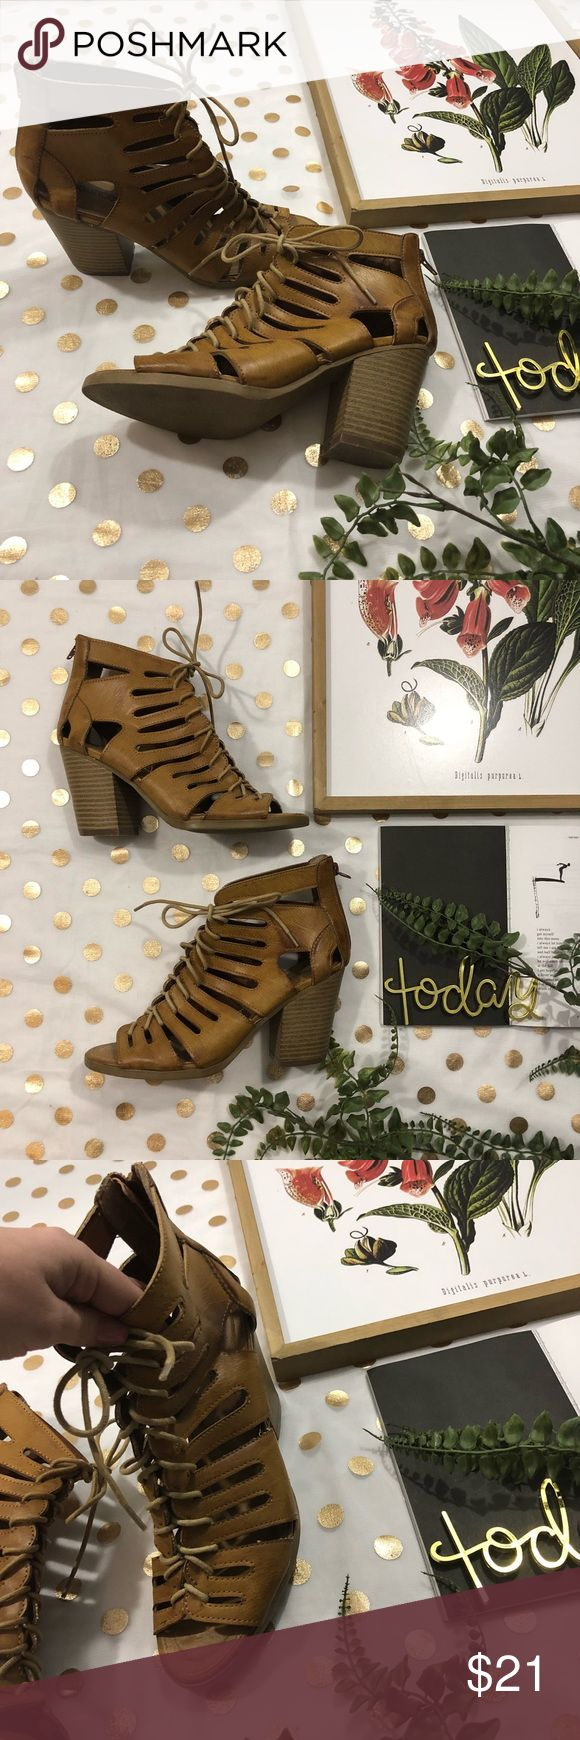 Maurice's brown  leather peep toe lace up heel 8.5 Maurice's brown faux leather lace up peep toe heels size 8.5 In good used Condition  I wore these maybe 5 times  Very comfortable heels!  Cute with jeans dresses shorts , you name it ✨   Any ? Please ask , I 💛 offers  Yes those run true to size ✨ Maurices Shoes Heeled Boots